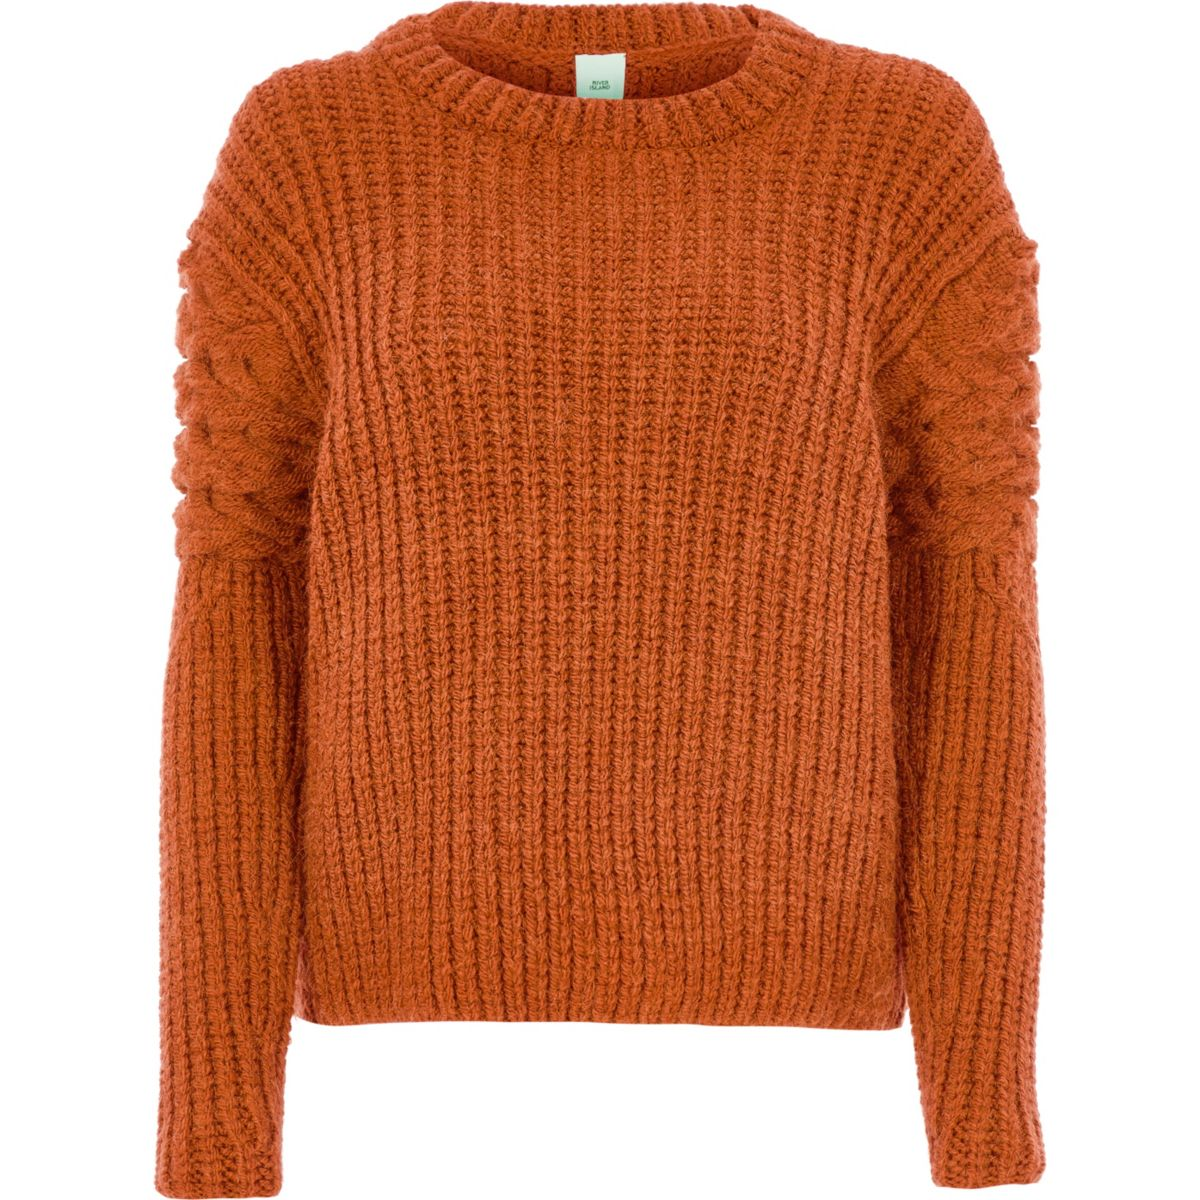 Orange chunky cable knit sleeve sweater